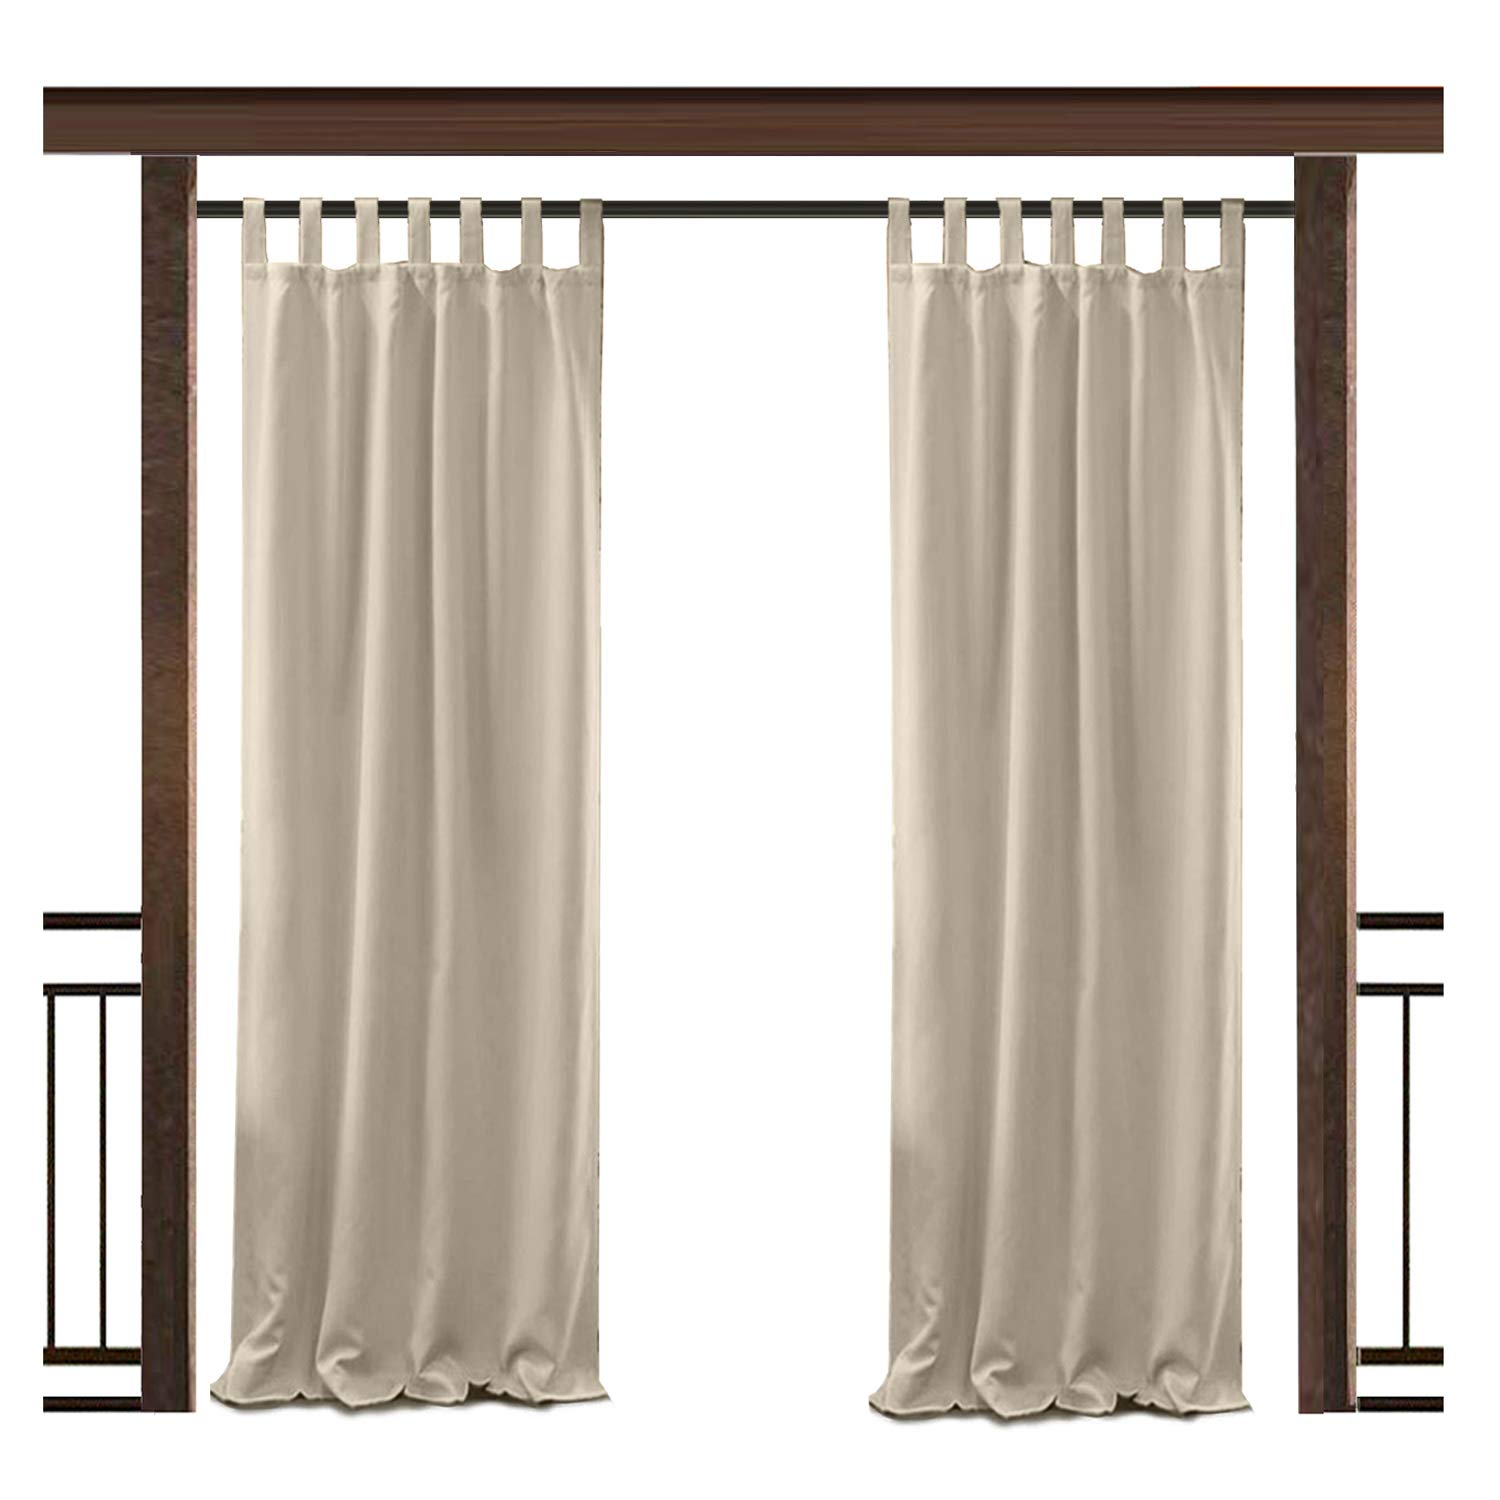 TWOPAGES Outdoor Waterproof Curtain Beige Tab Top Drape, 50'' W x 72'' L Front Porch Pergola Cabana Covered Patio Gazebo Dock Beach Home (1 panel)